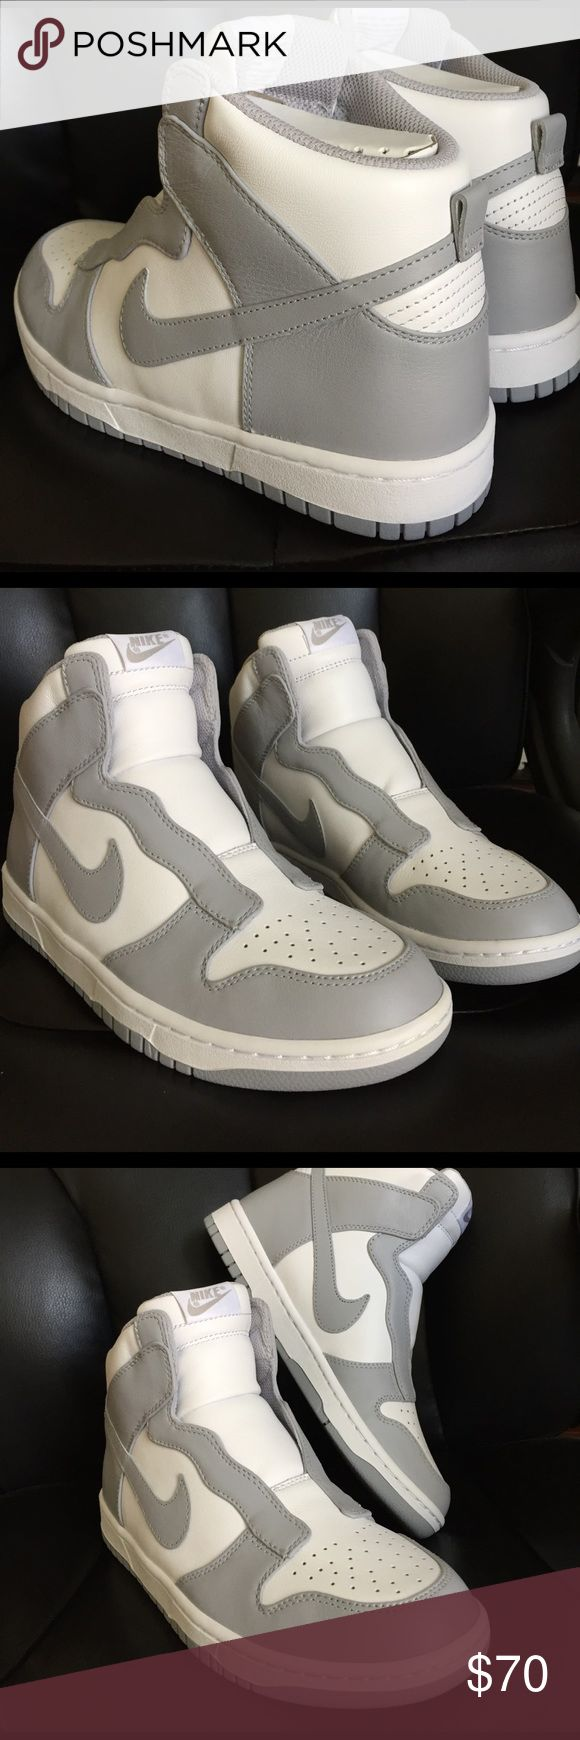 Nike Dunk Sacai Brand new women's Nike Dunk Sacai, size 8.0, gray and white color. MSRP$200. No trades no low balling. Nike Shoes Athletic Shoes